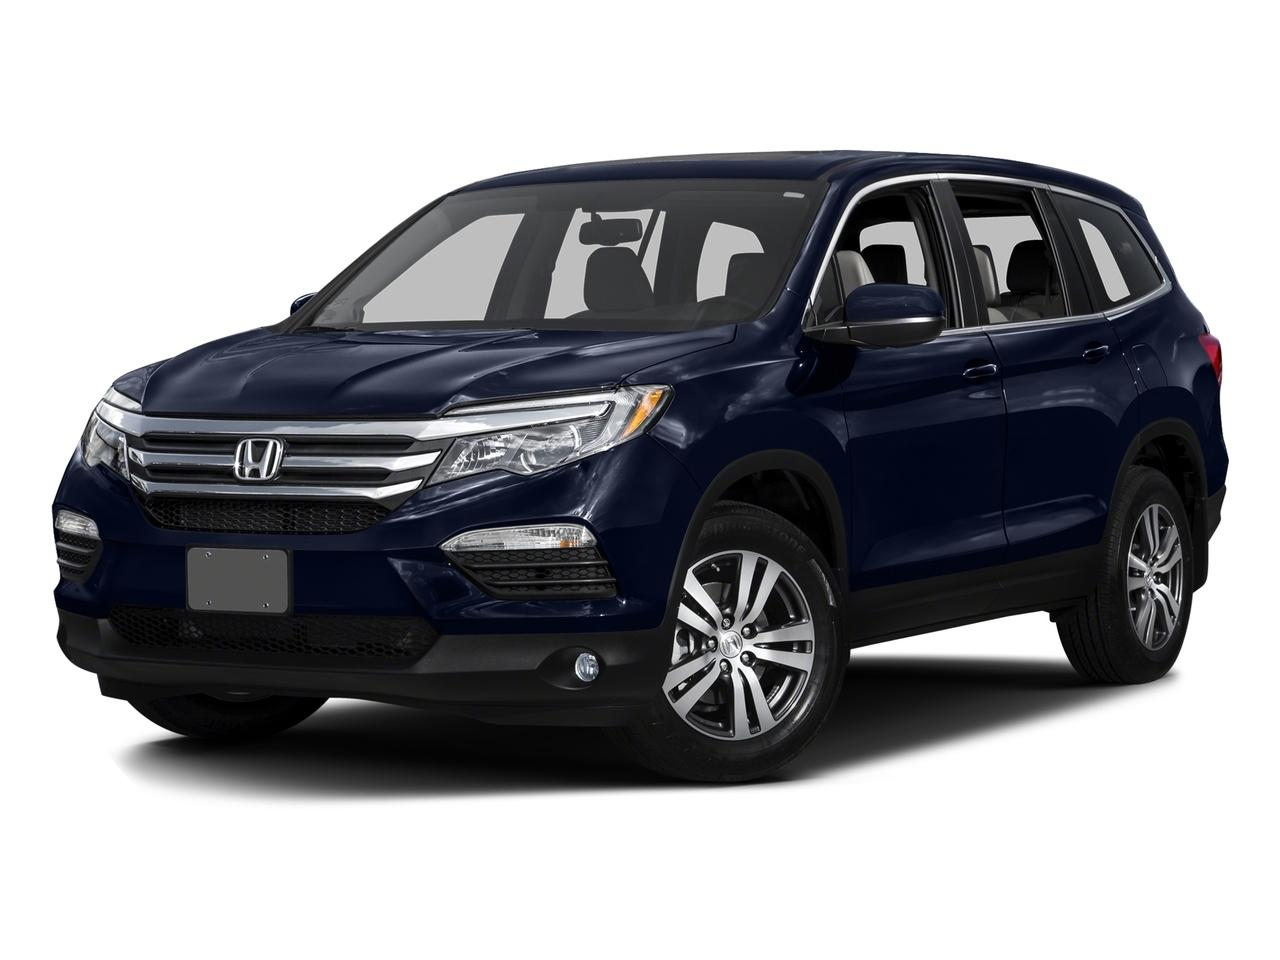 2016 Honda Pilot Vehicle Photo in WEST CHESTER, PA 19382-4976